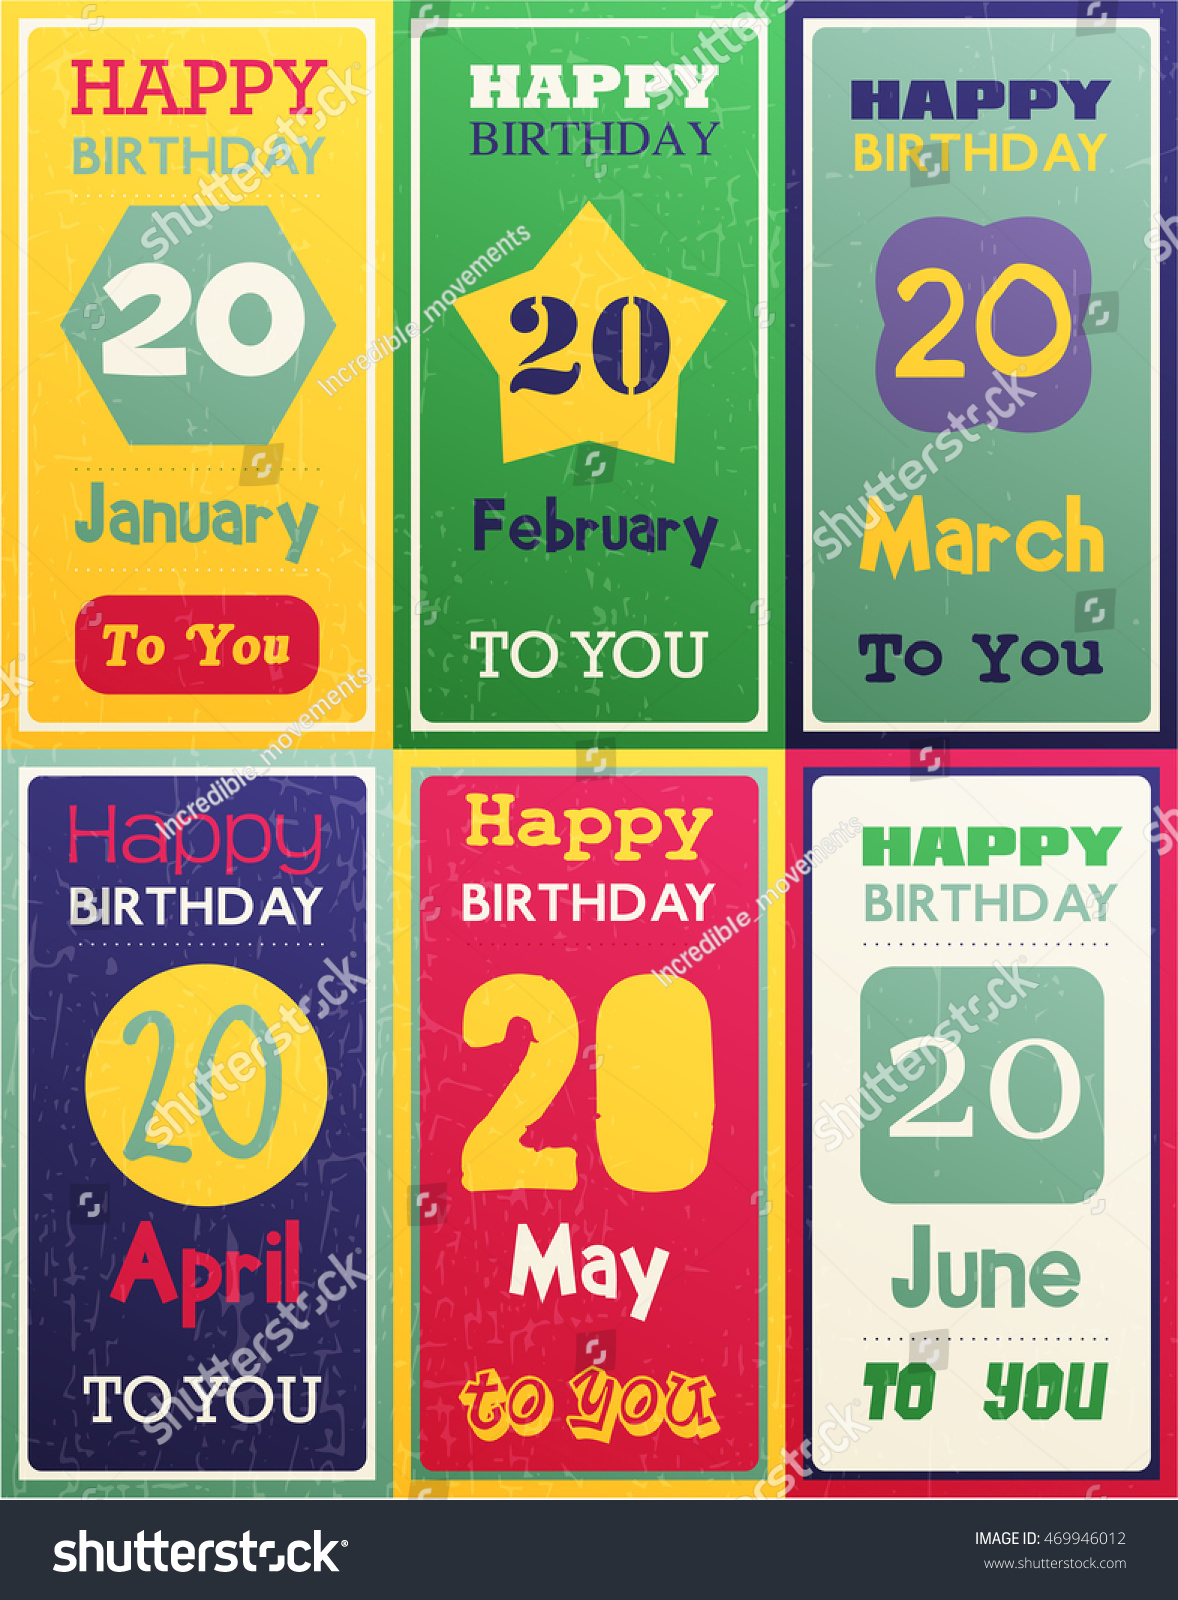 Greeting Happy Birthday Card Date Twenty Of Birth By Month January February March